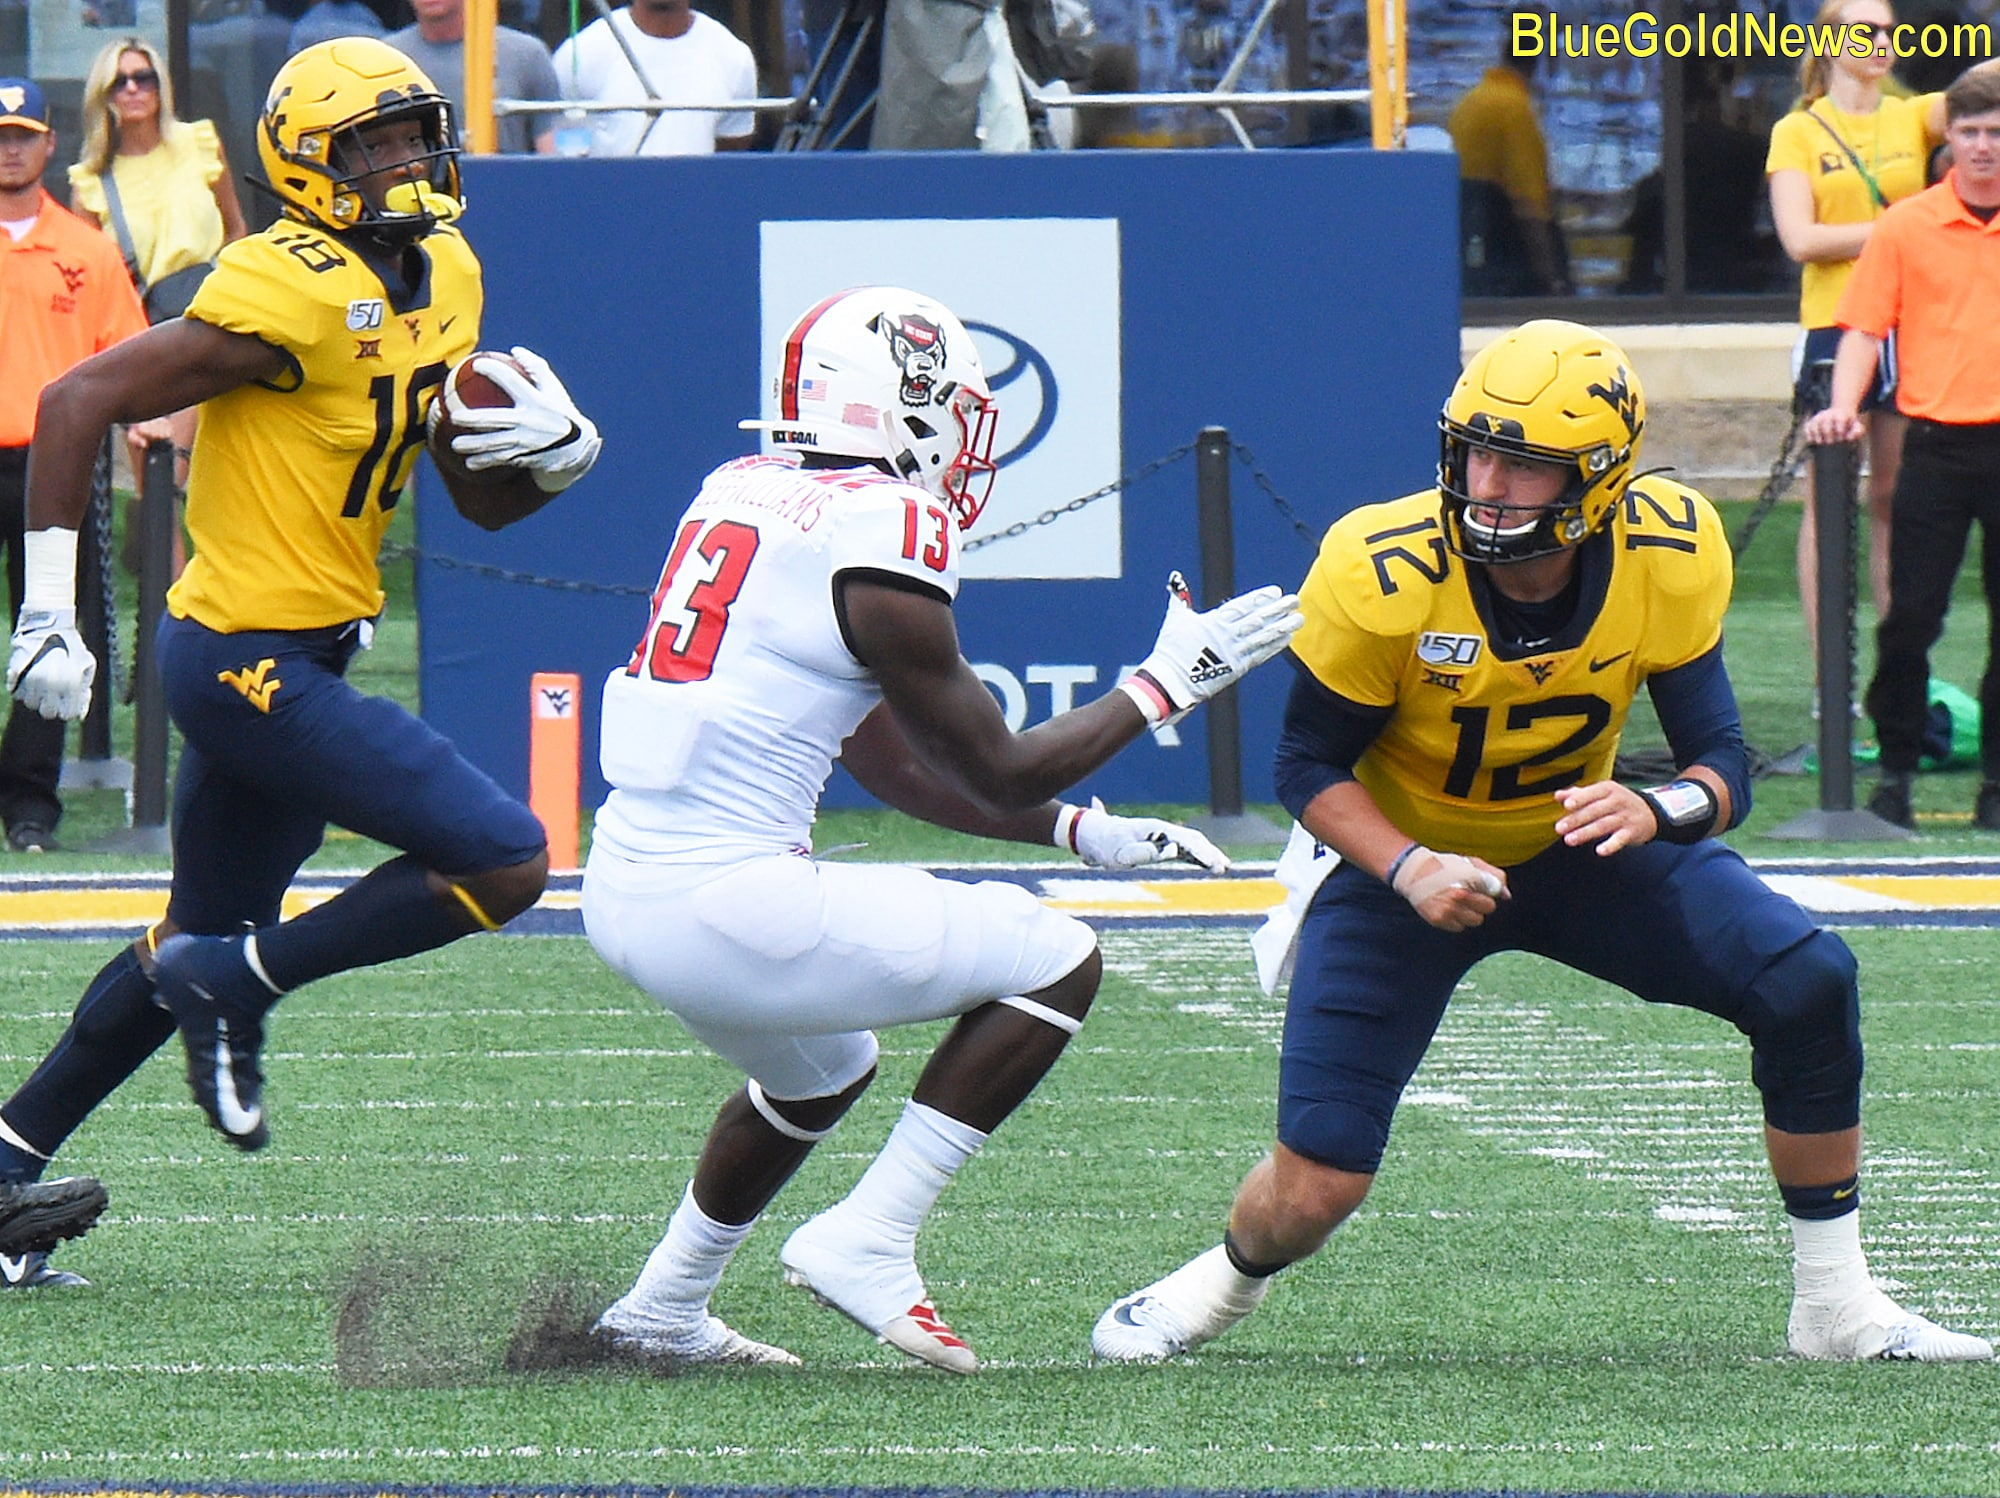 West Virginia quarterback Austin Kendall (12) prepares to throw a block on N.C. State's Tyler Baker-Williams (13)